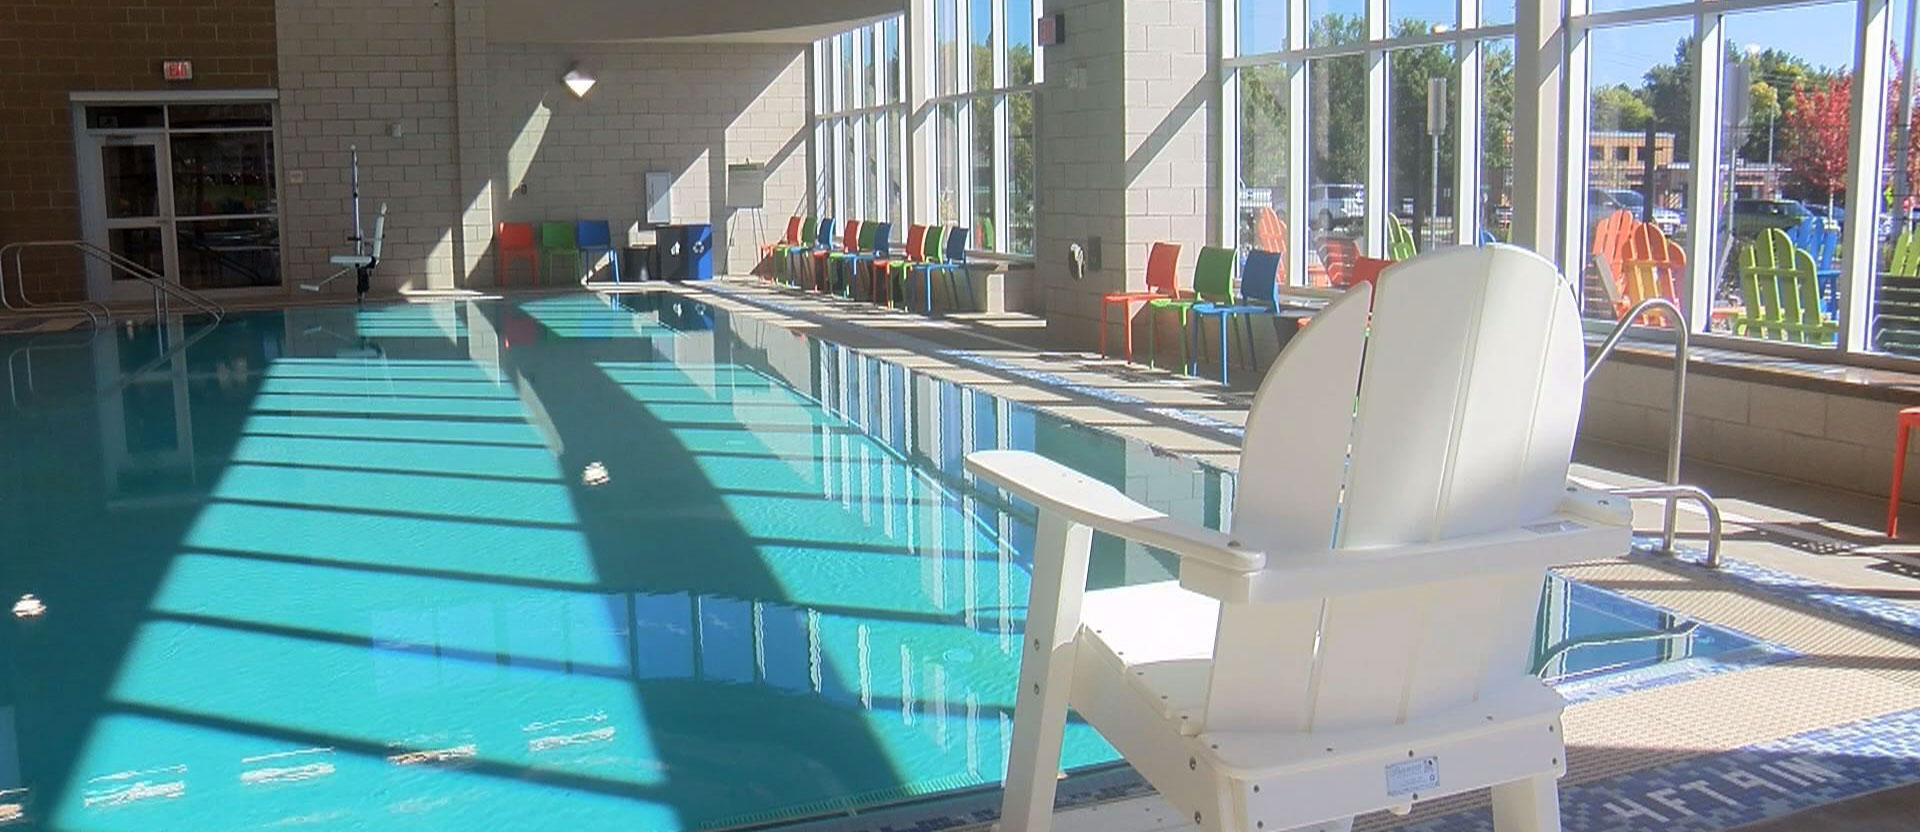 Midco Aquatic Center Will Host Swim Meets But Not As Soon As Some Would Like